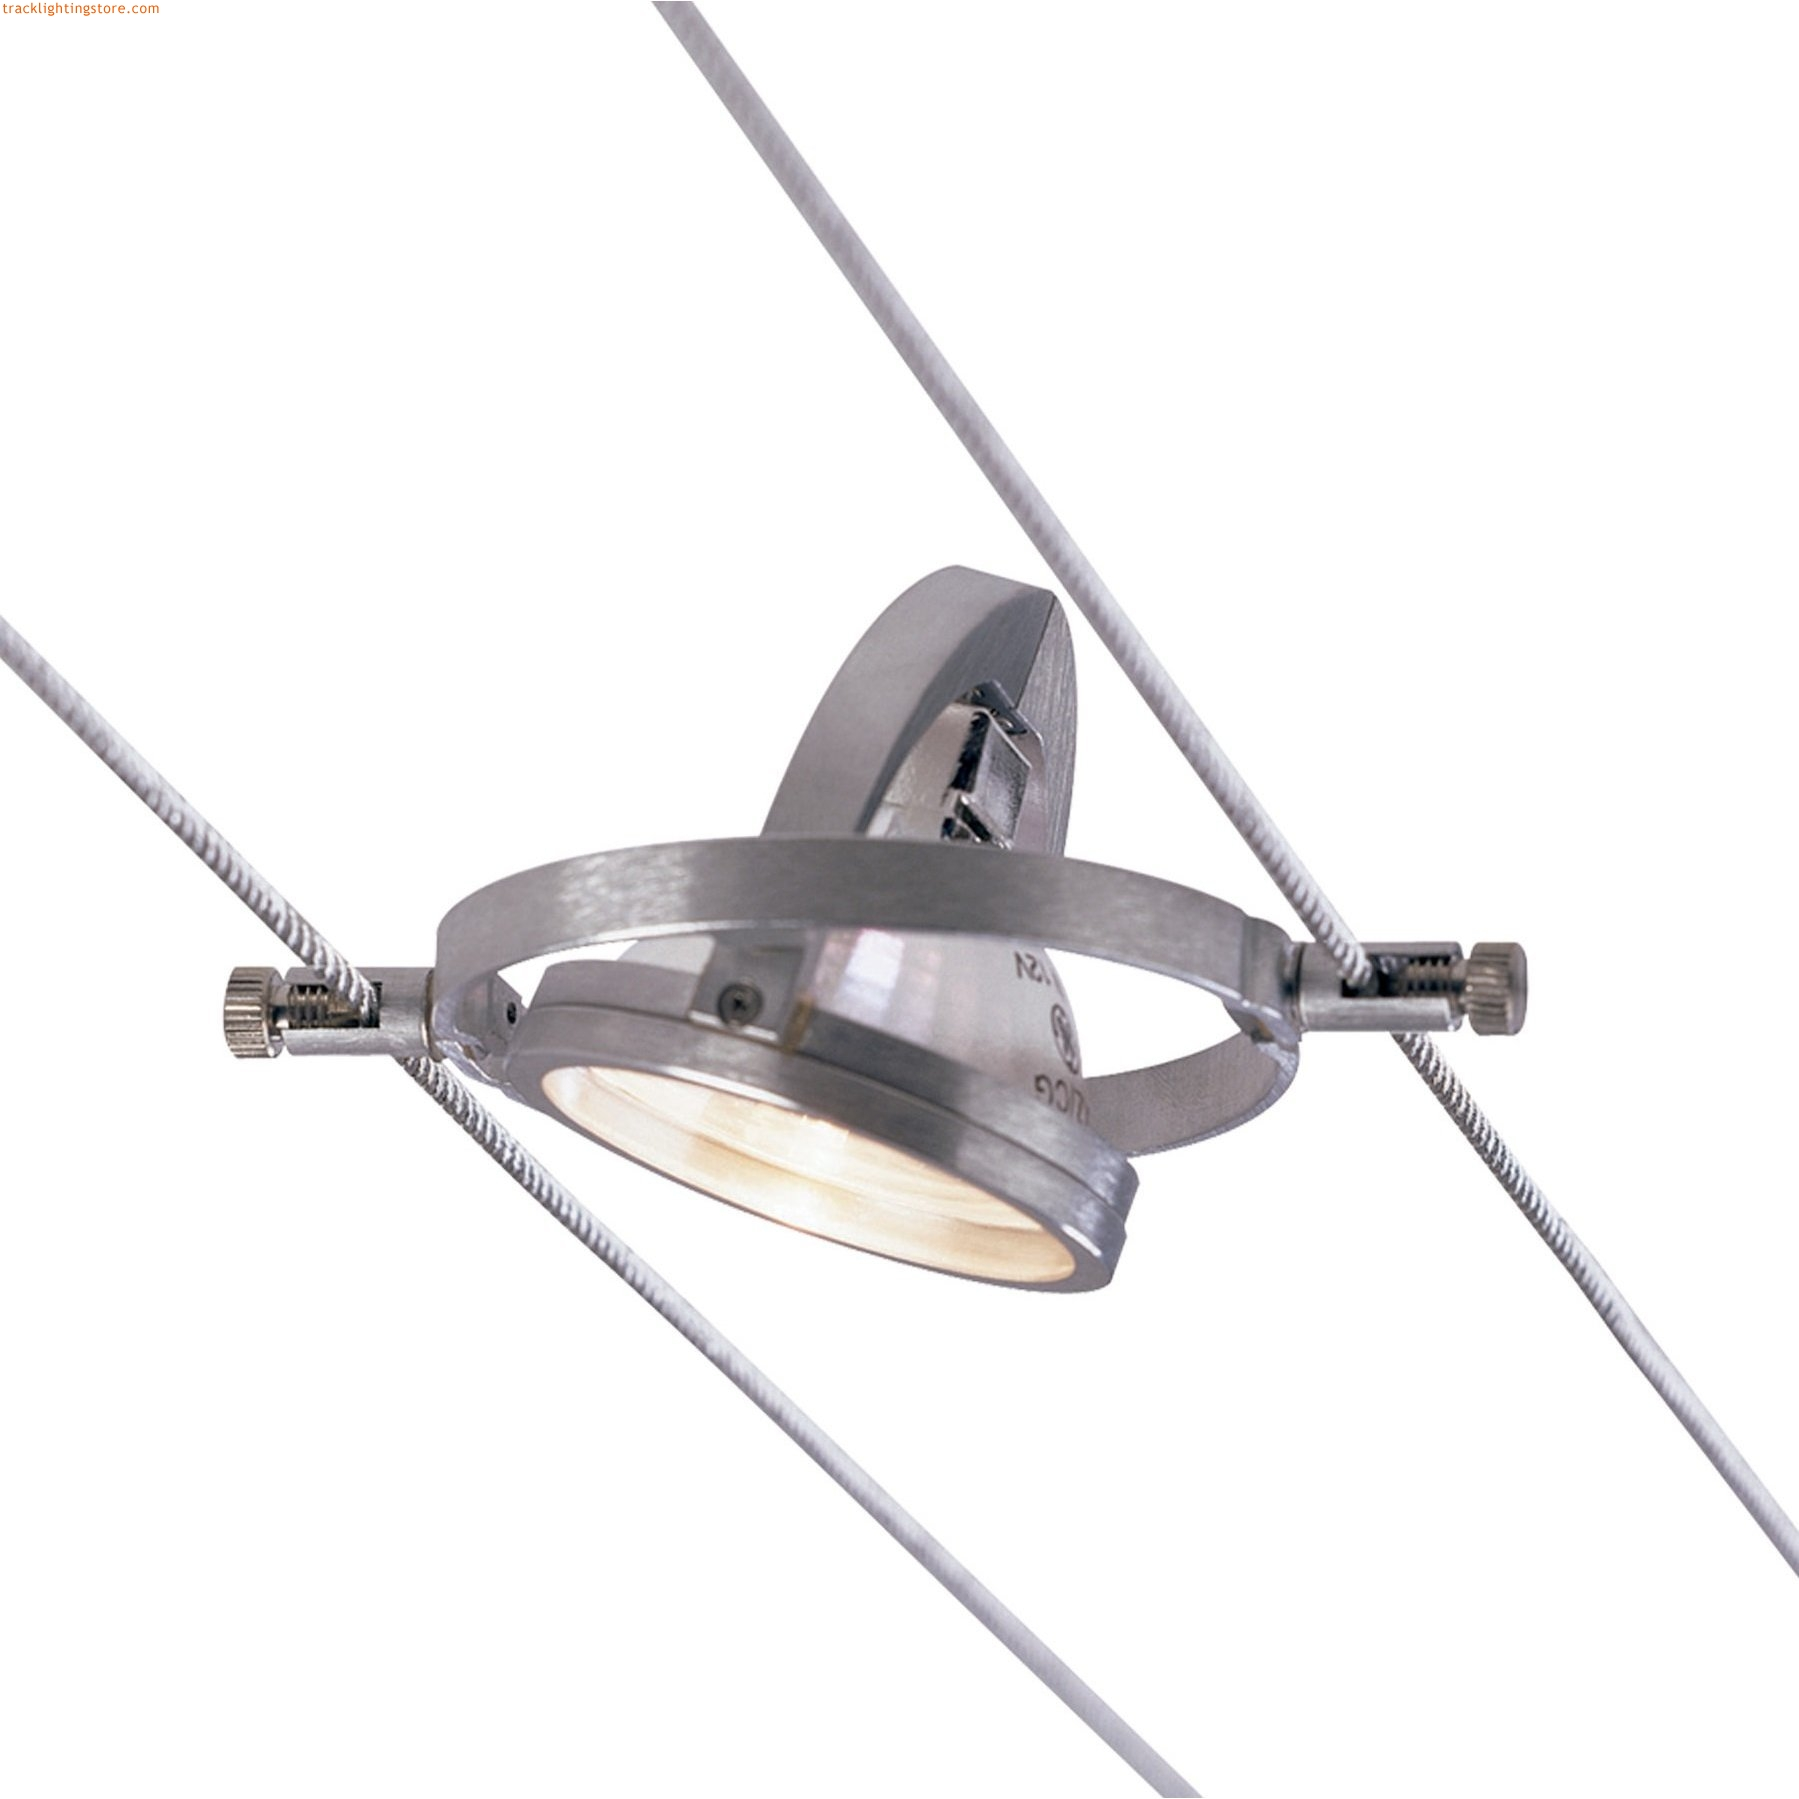 Track Lighting Maximum Length: 5.5 Inch Cable Separation (for